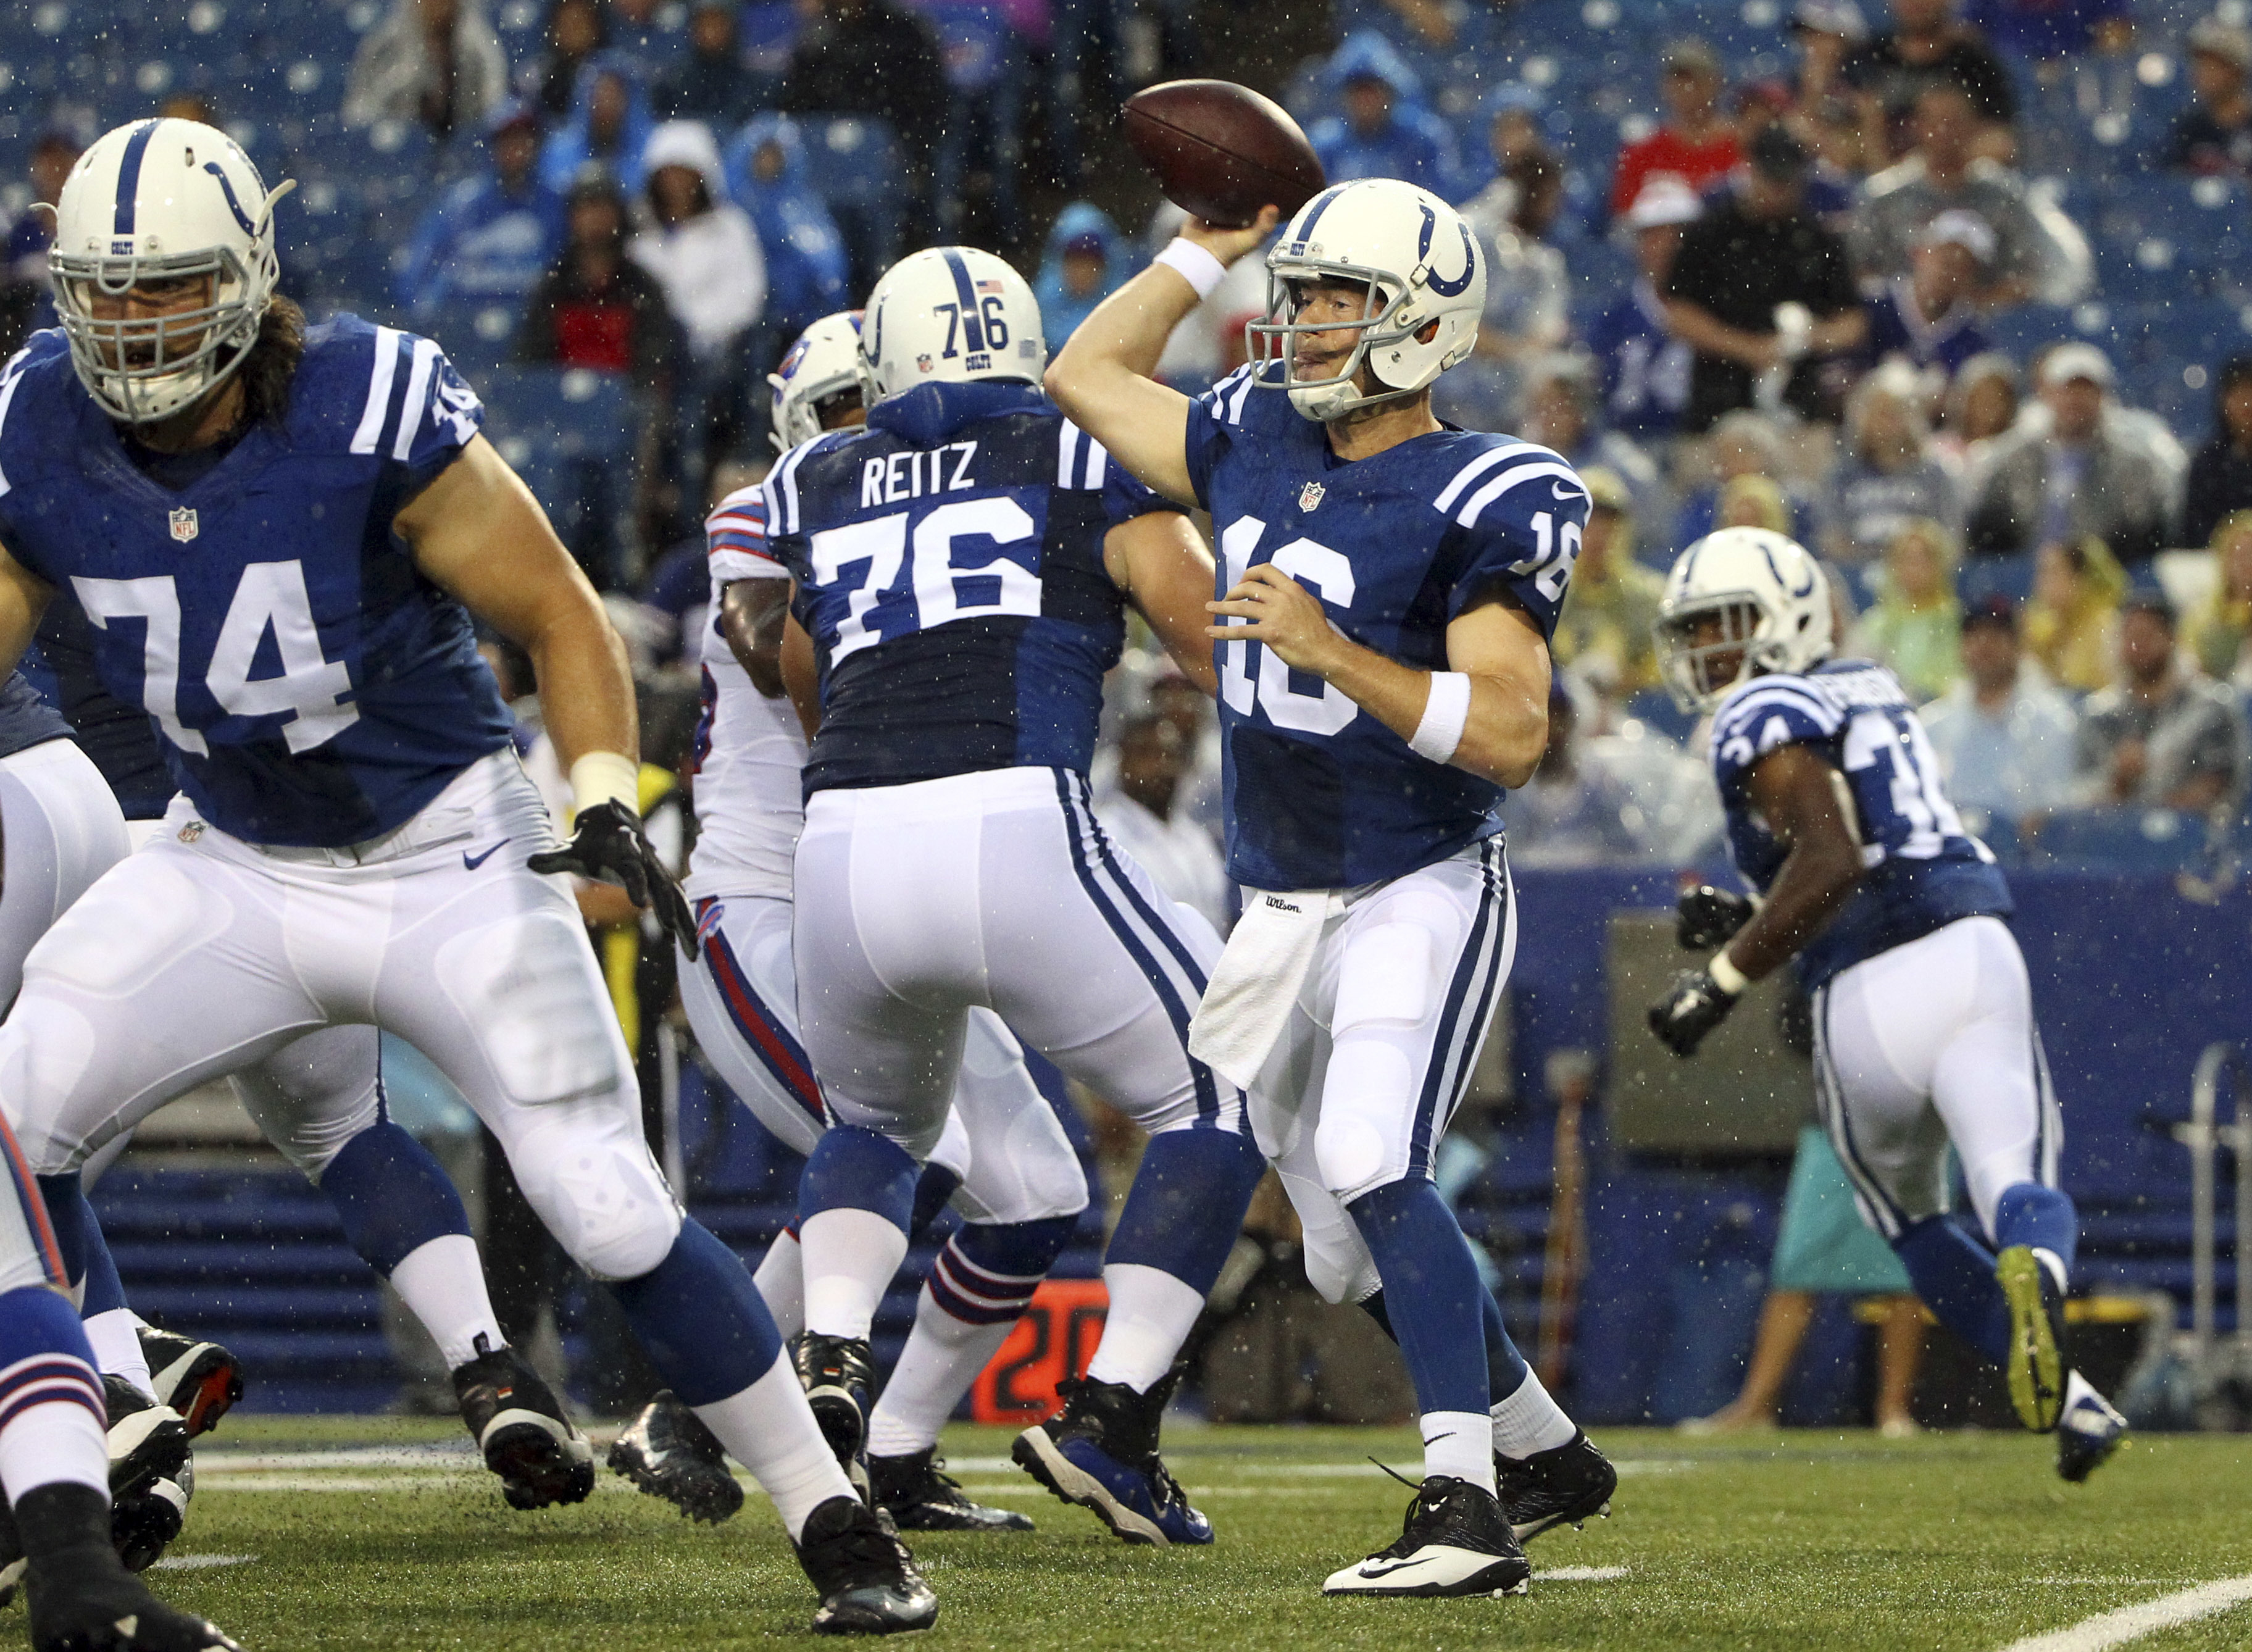 Indianapolis Colts quarterback Scott Tolzien (16) passes behind a block by tackle Anthony Castonzo (74) during the first half of a preseason NFL football game against the Buffalo Bills Saturday, Aug. 13, 2016, in Orchard Park, N.Y. (AP Photo/Bill Wippert)